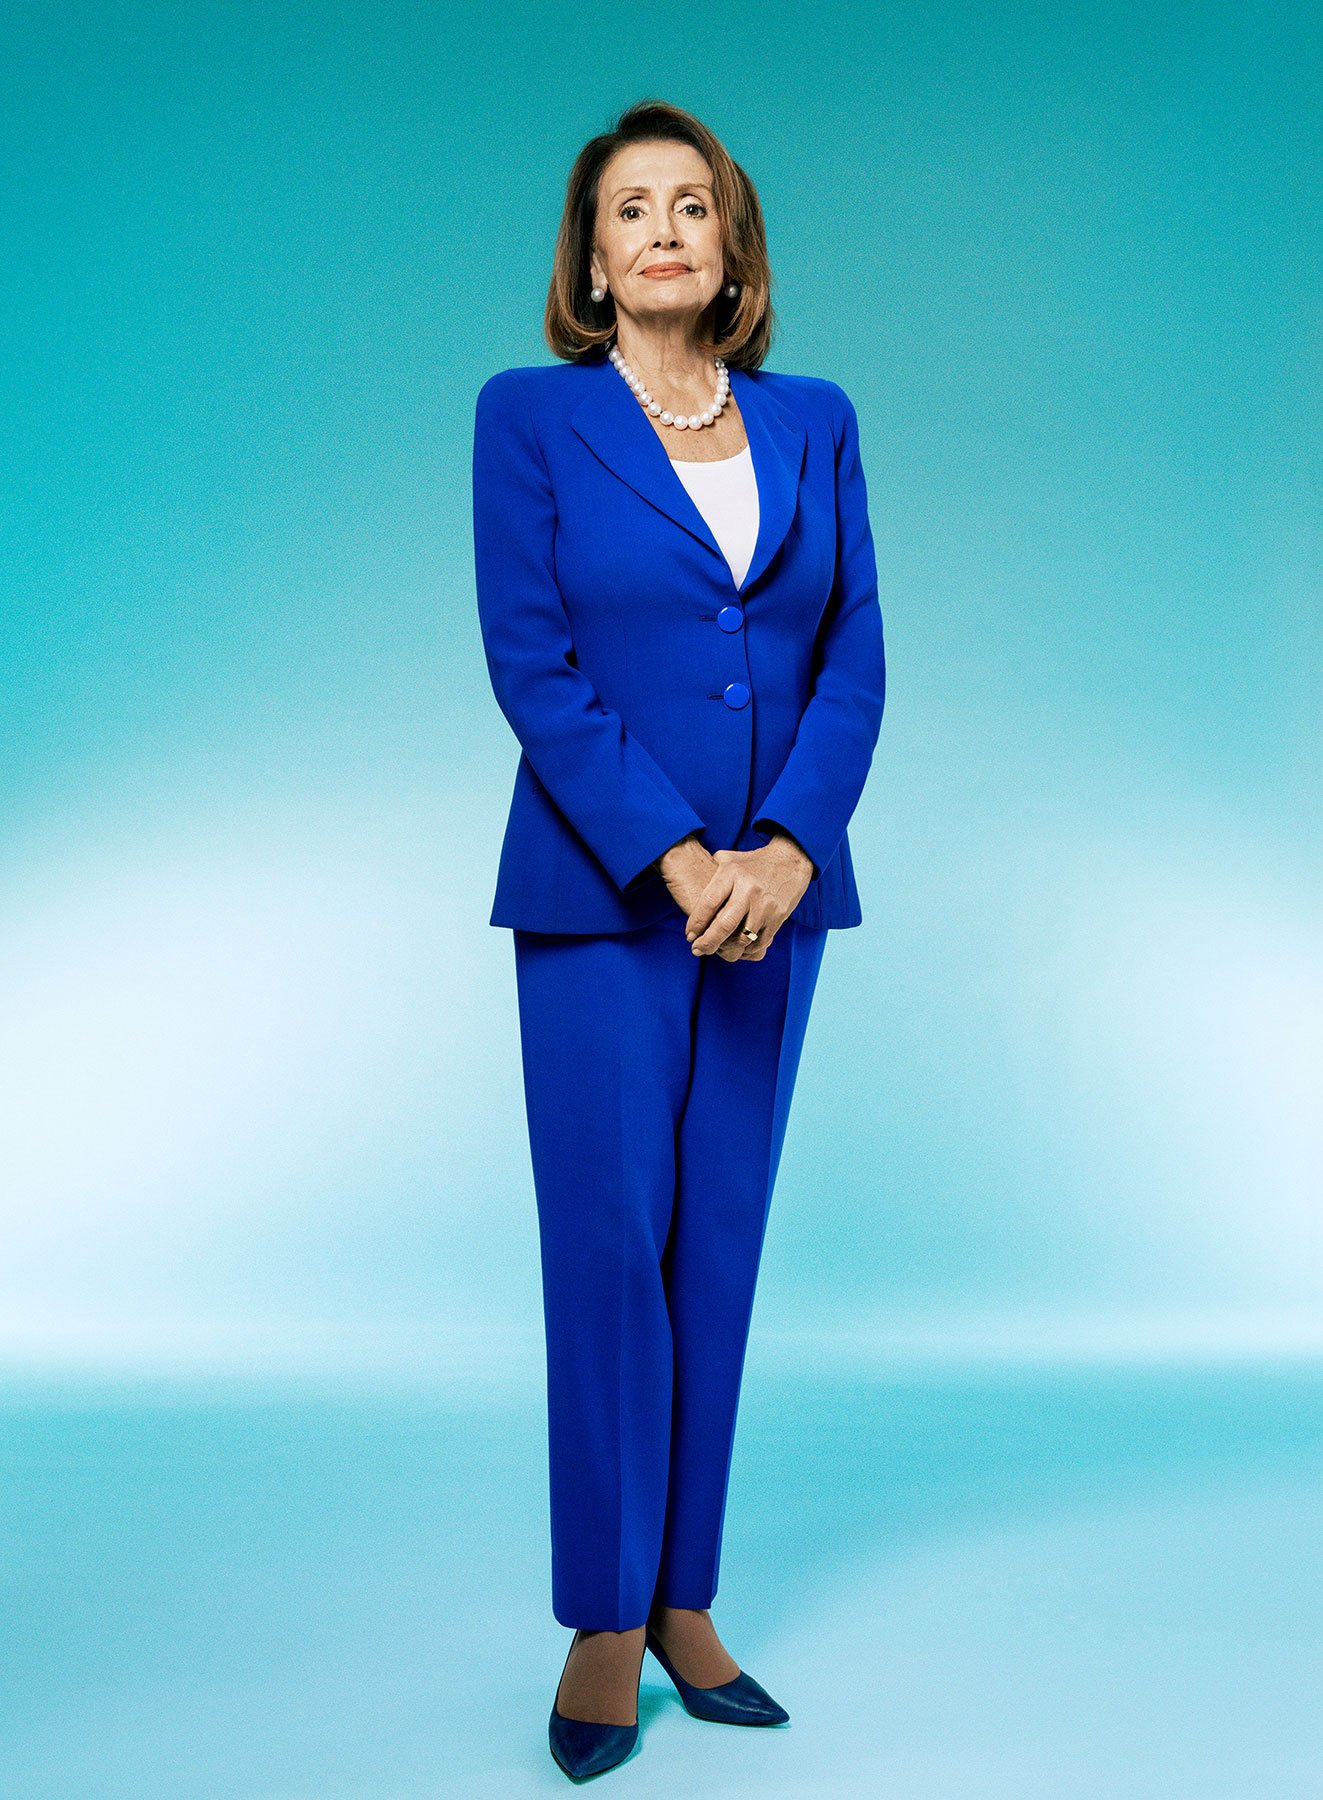 Nancy Pelosi Is on the 2019 TIME 100 List.